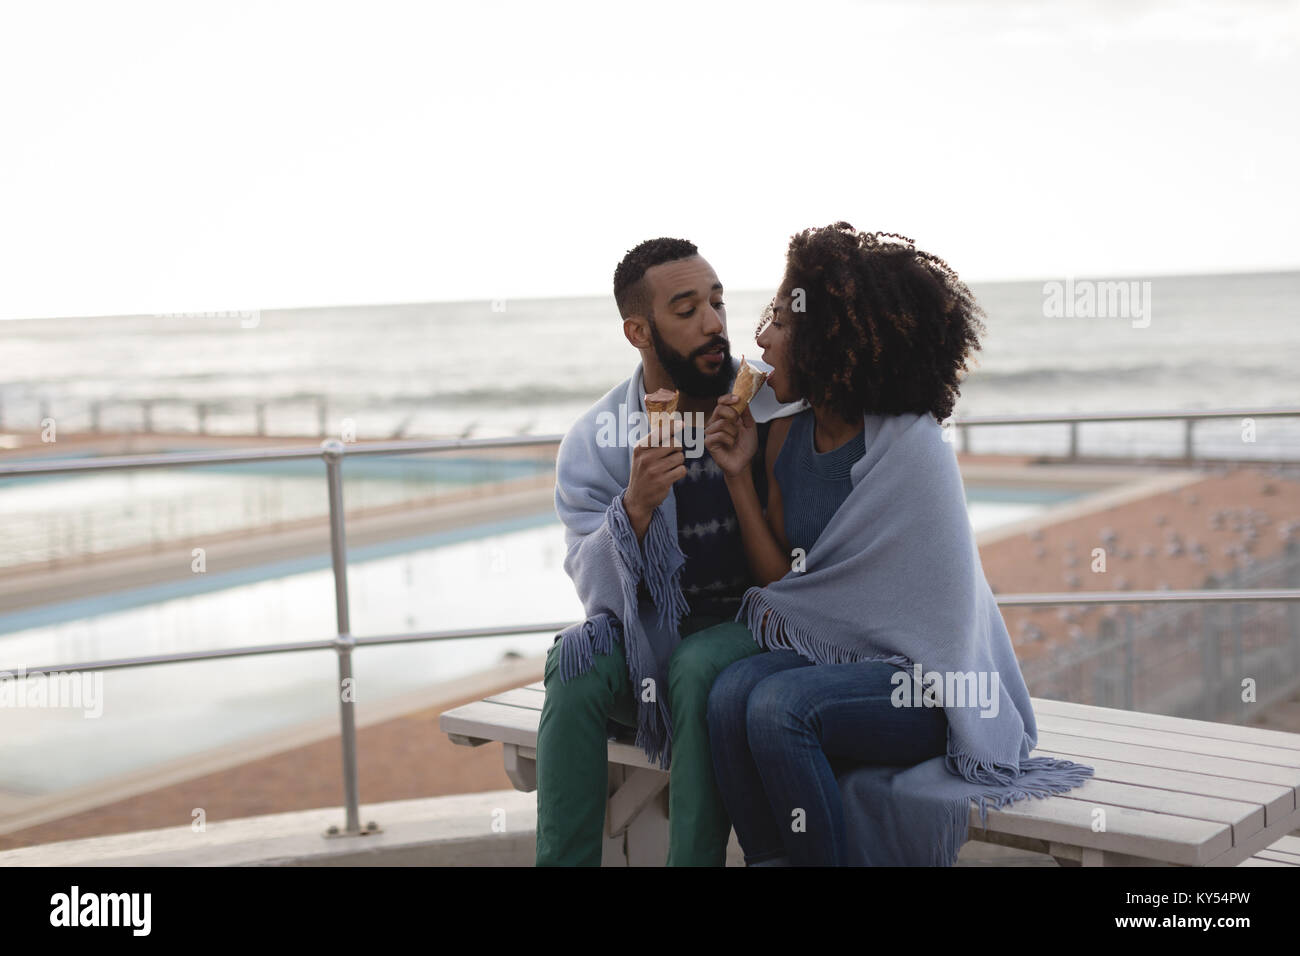 Couple wrapped in a shawl having ice cream - Stock Image